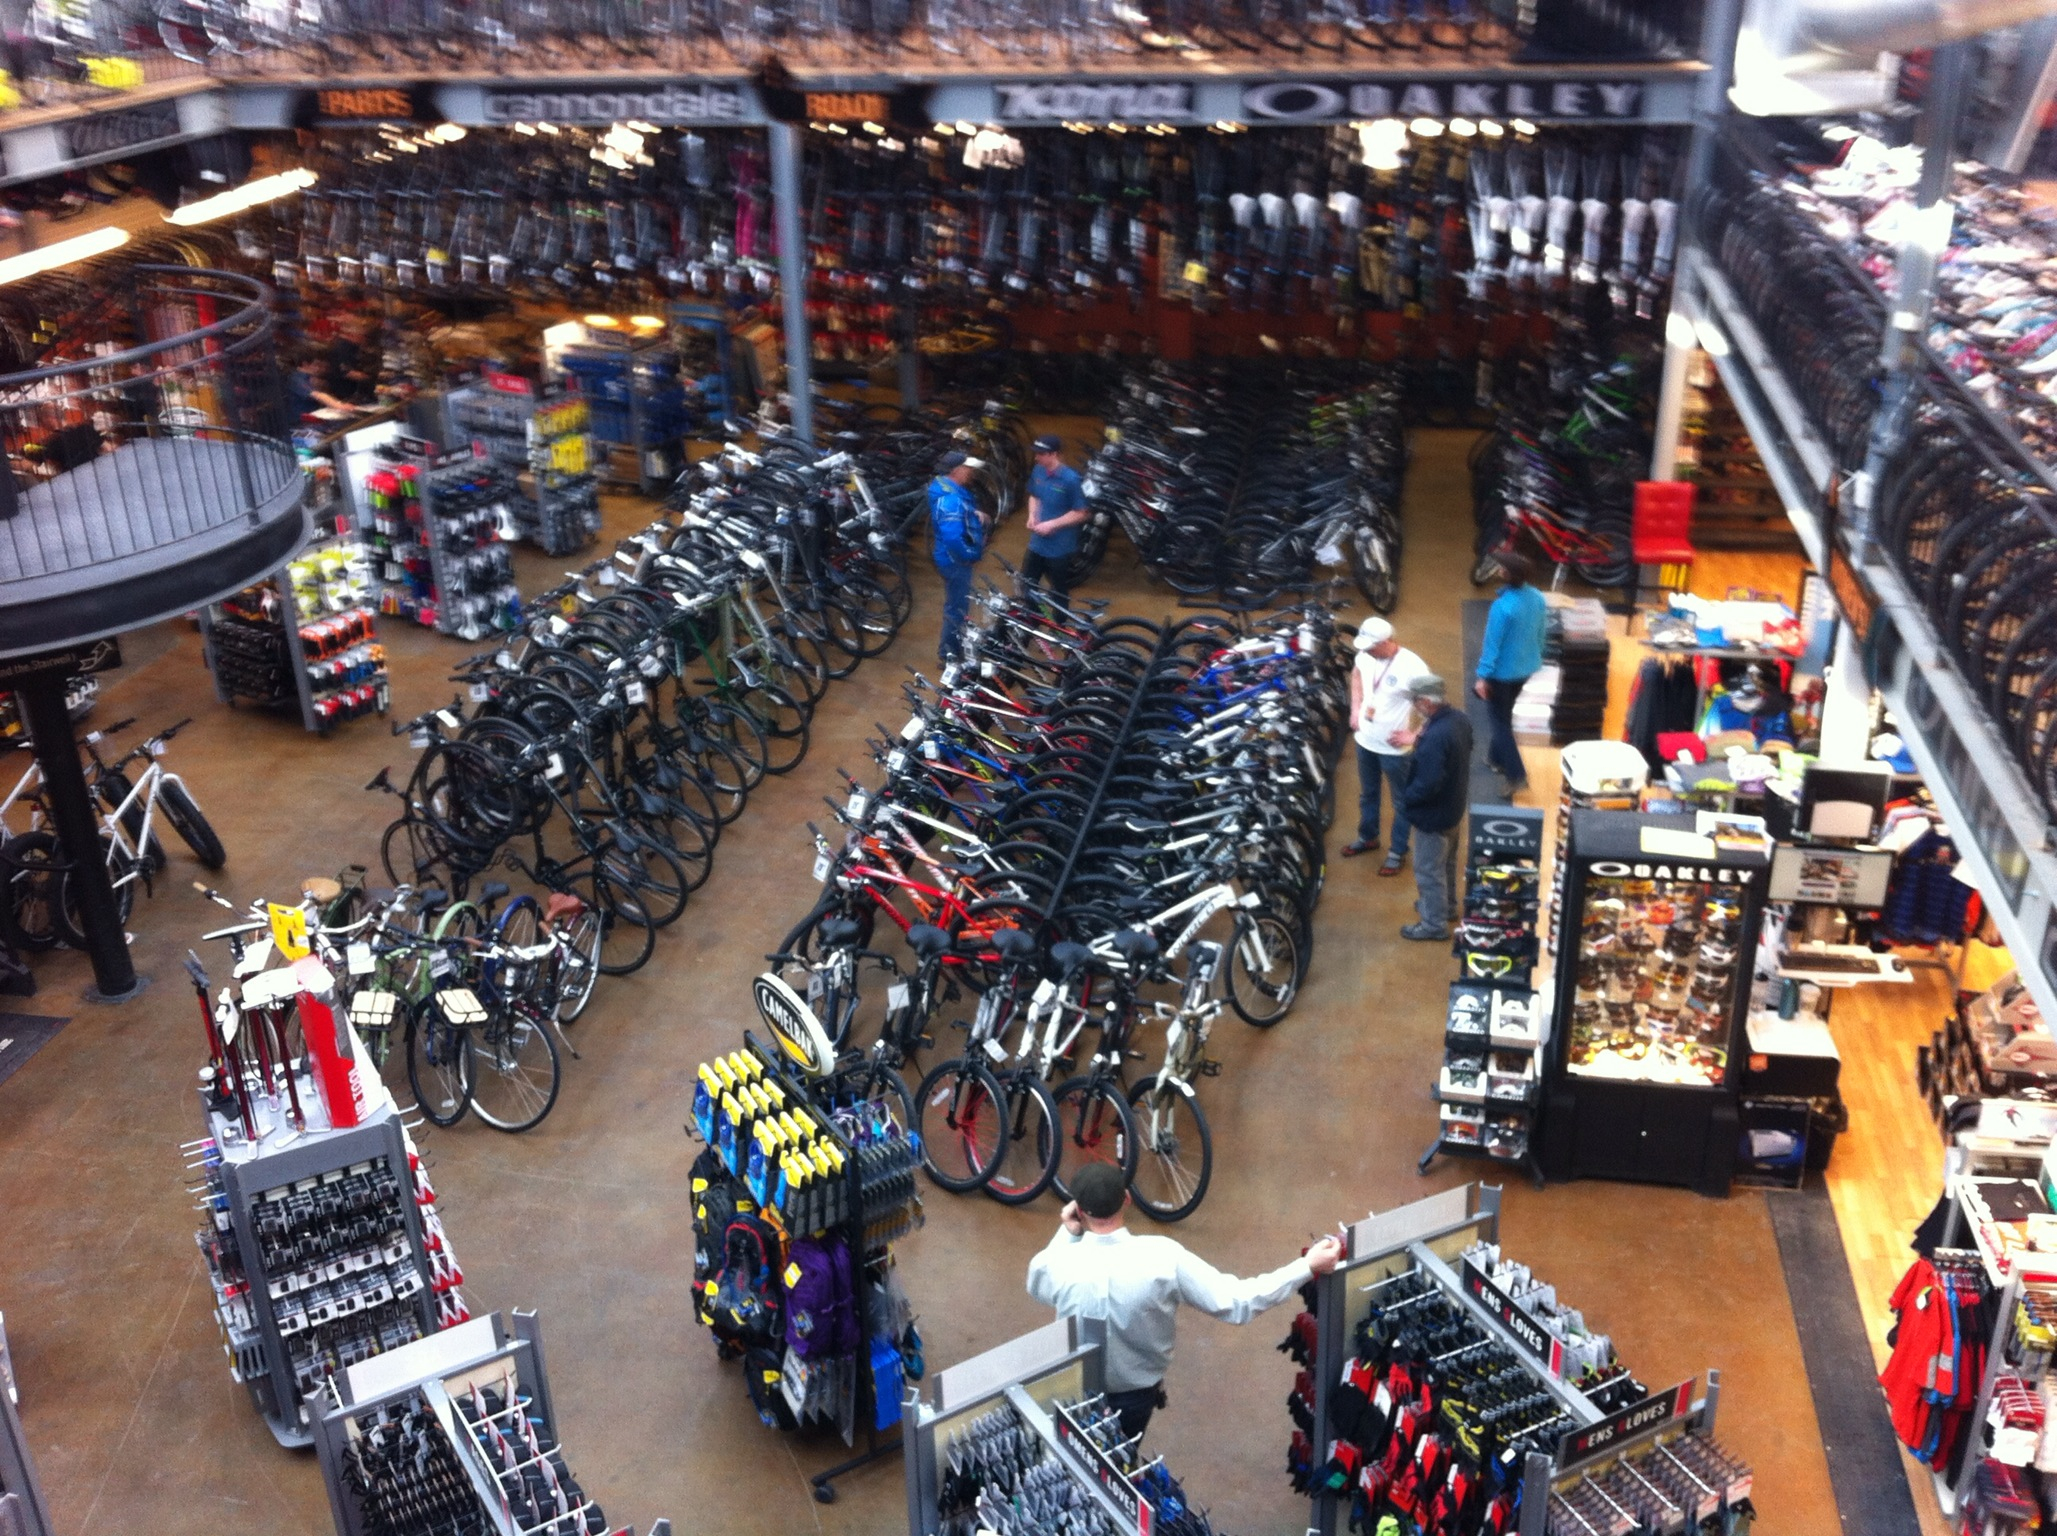 Calgary is home to perhaps North America's largest retail bike shop - Bow Cycle in beautiful downtown Bowness.